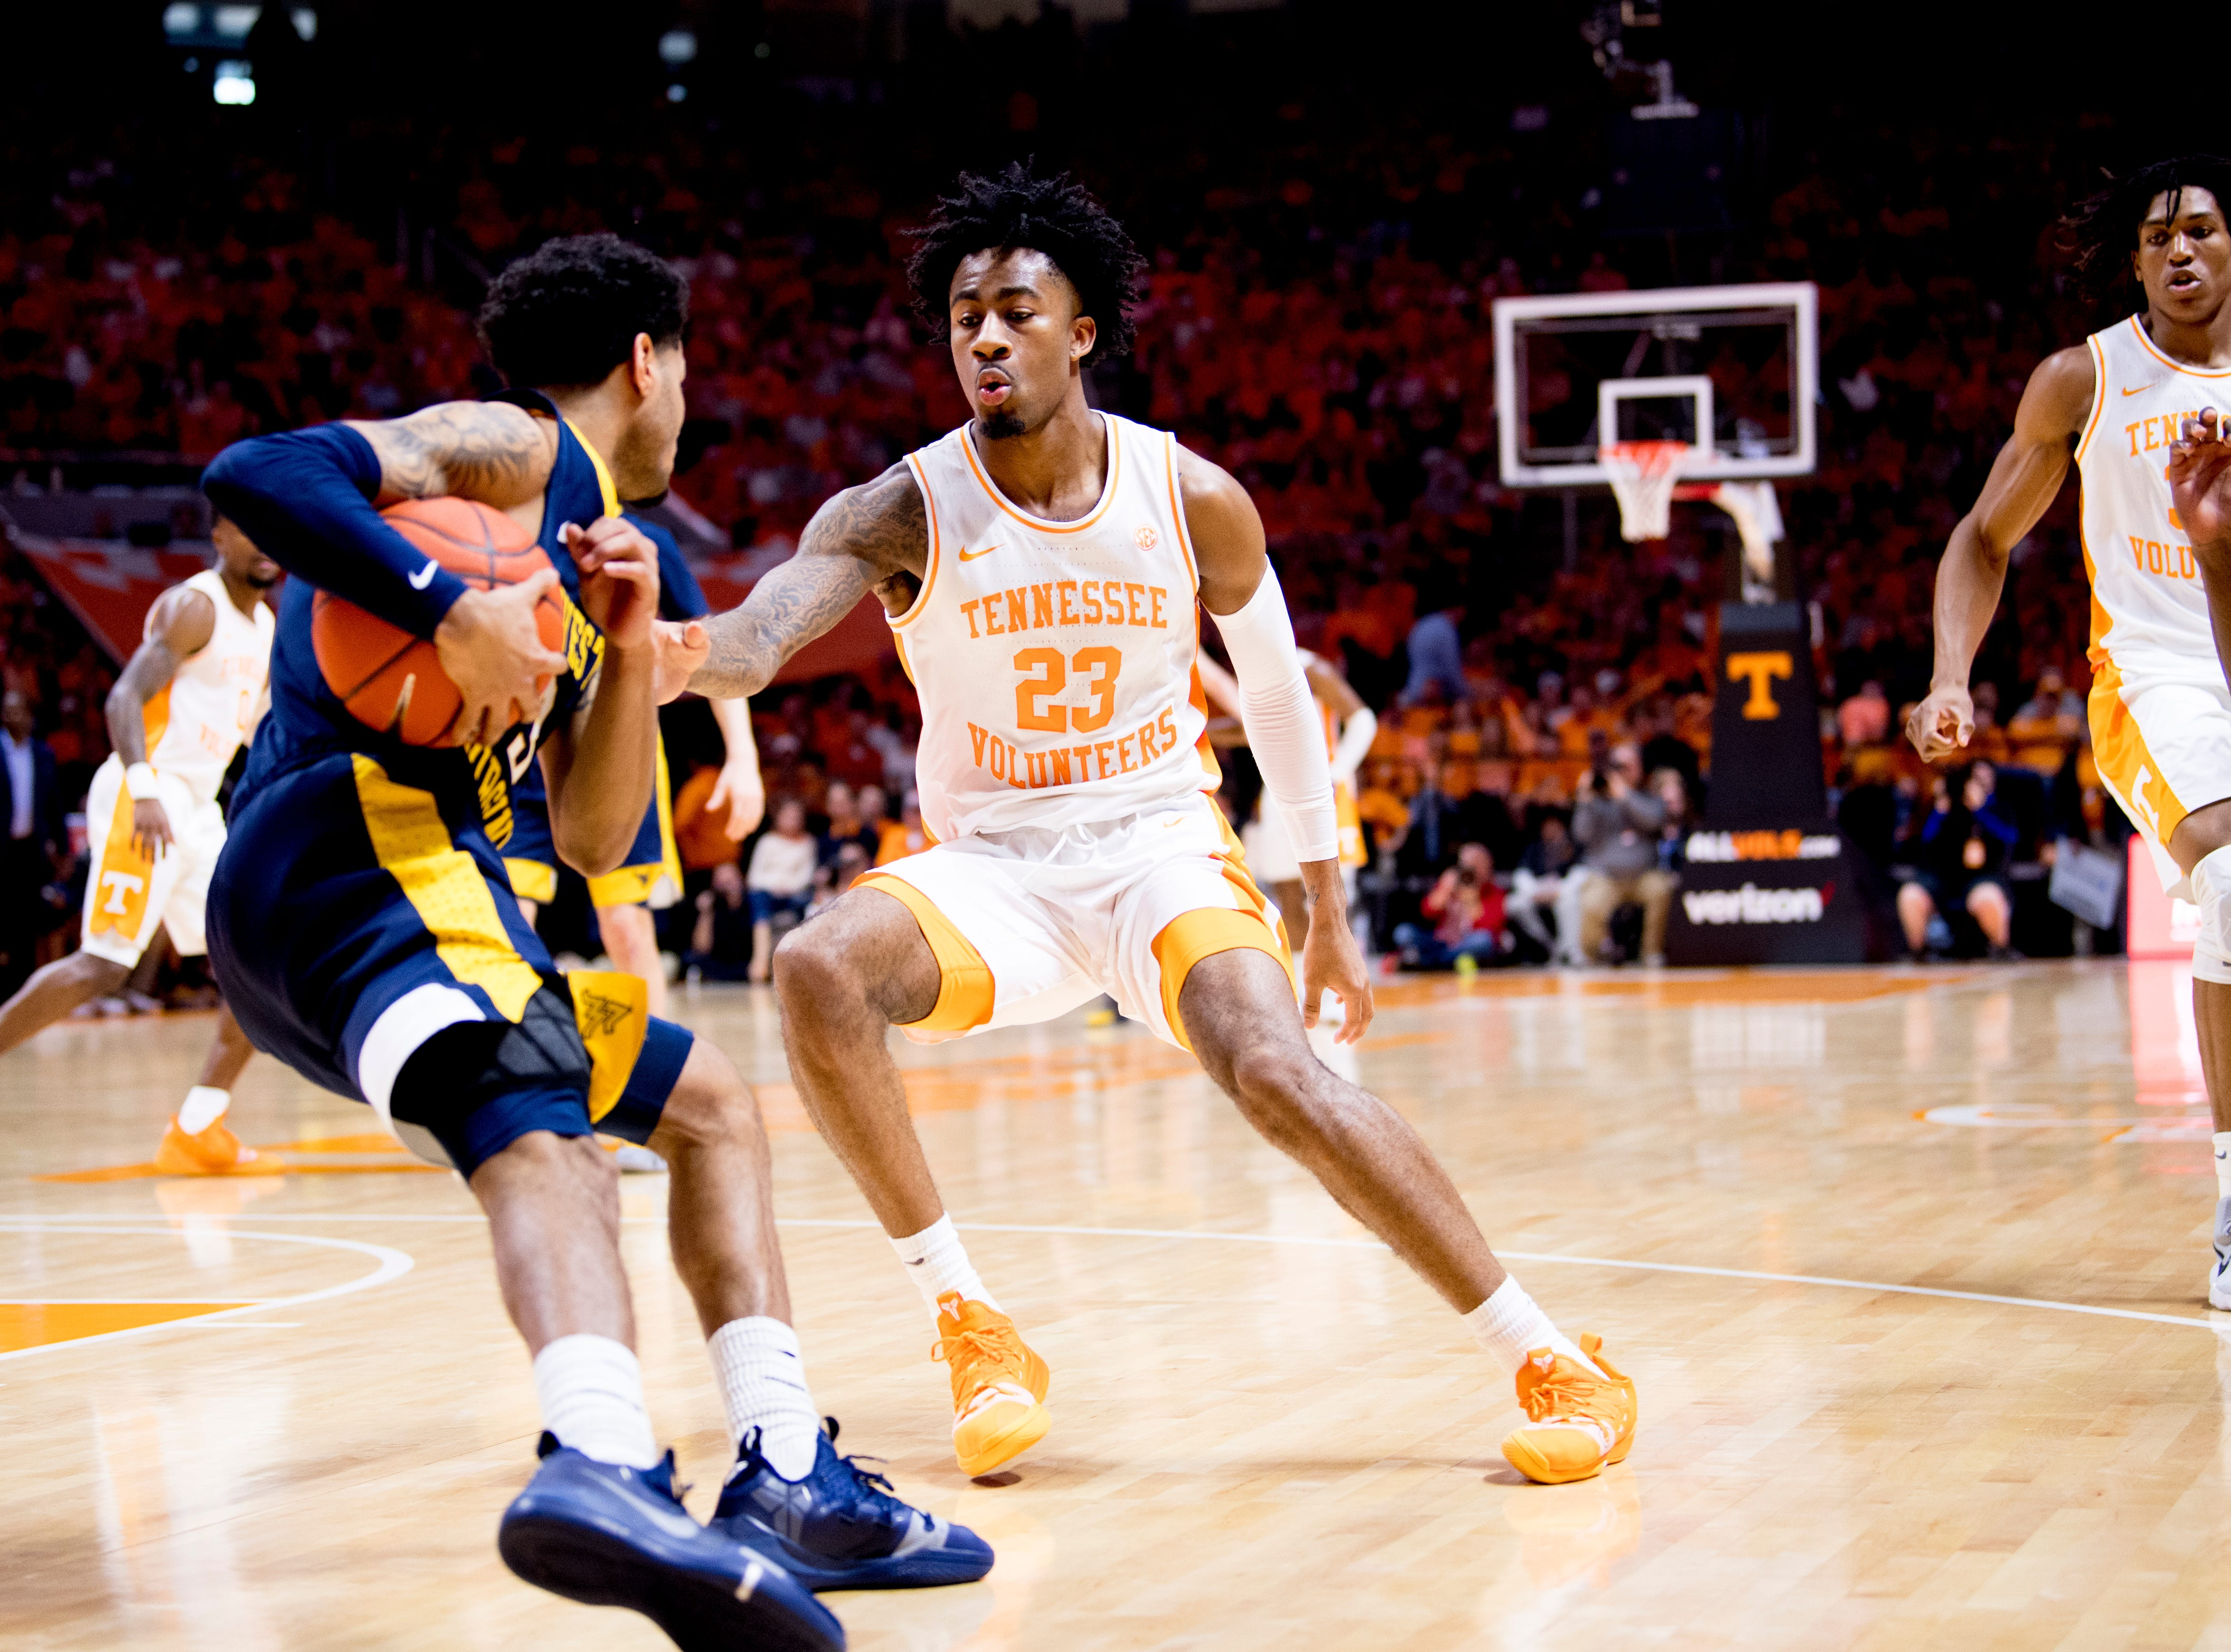 Tennessee guard Jordan Bowden (23) defends against West Virginia guard James Bolden (3) during a SEC/Big 12 Challenge game between Tennessee and West Virginia at Thompson-Boling Arena in Knoxville, Tennessee on Saturday, January 26, 2019.